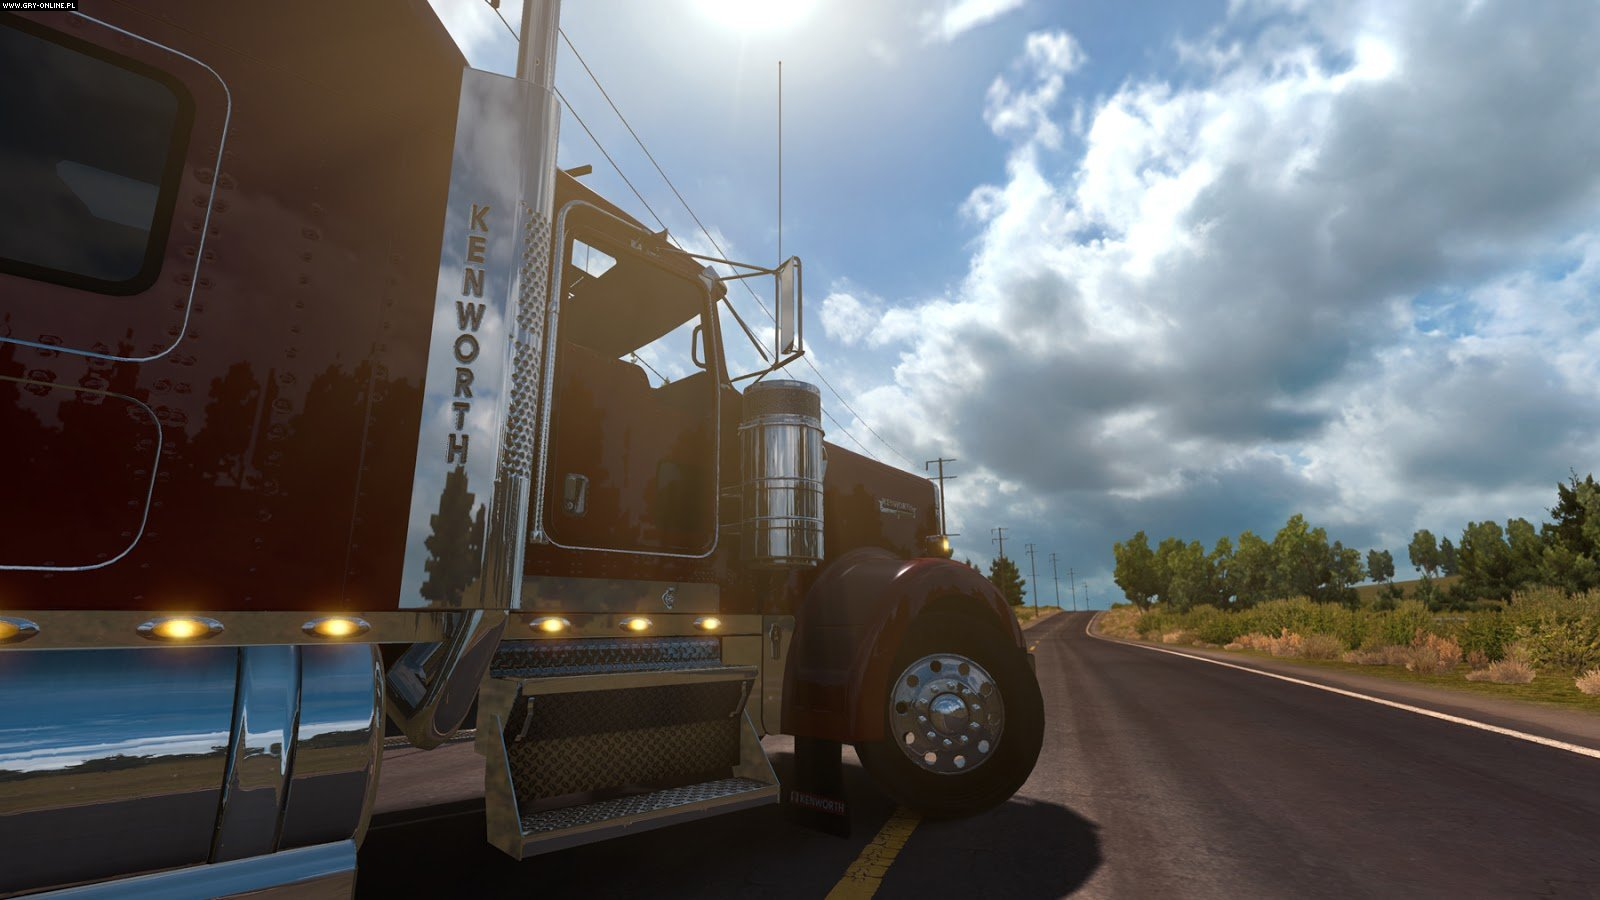 American Truck Simulator PC Gry Screen 9/68, SCS Software, IMGN.PRO